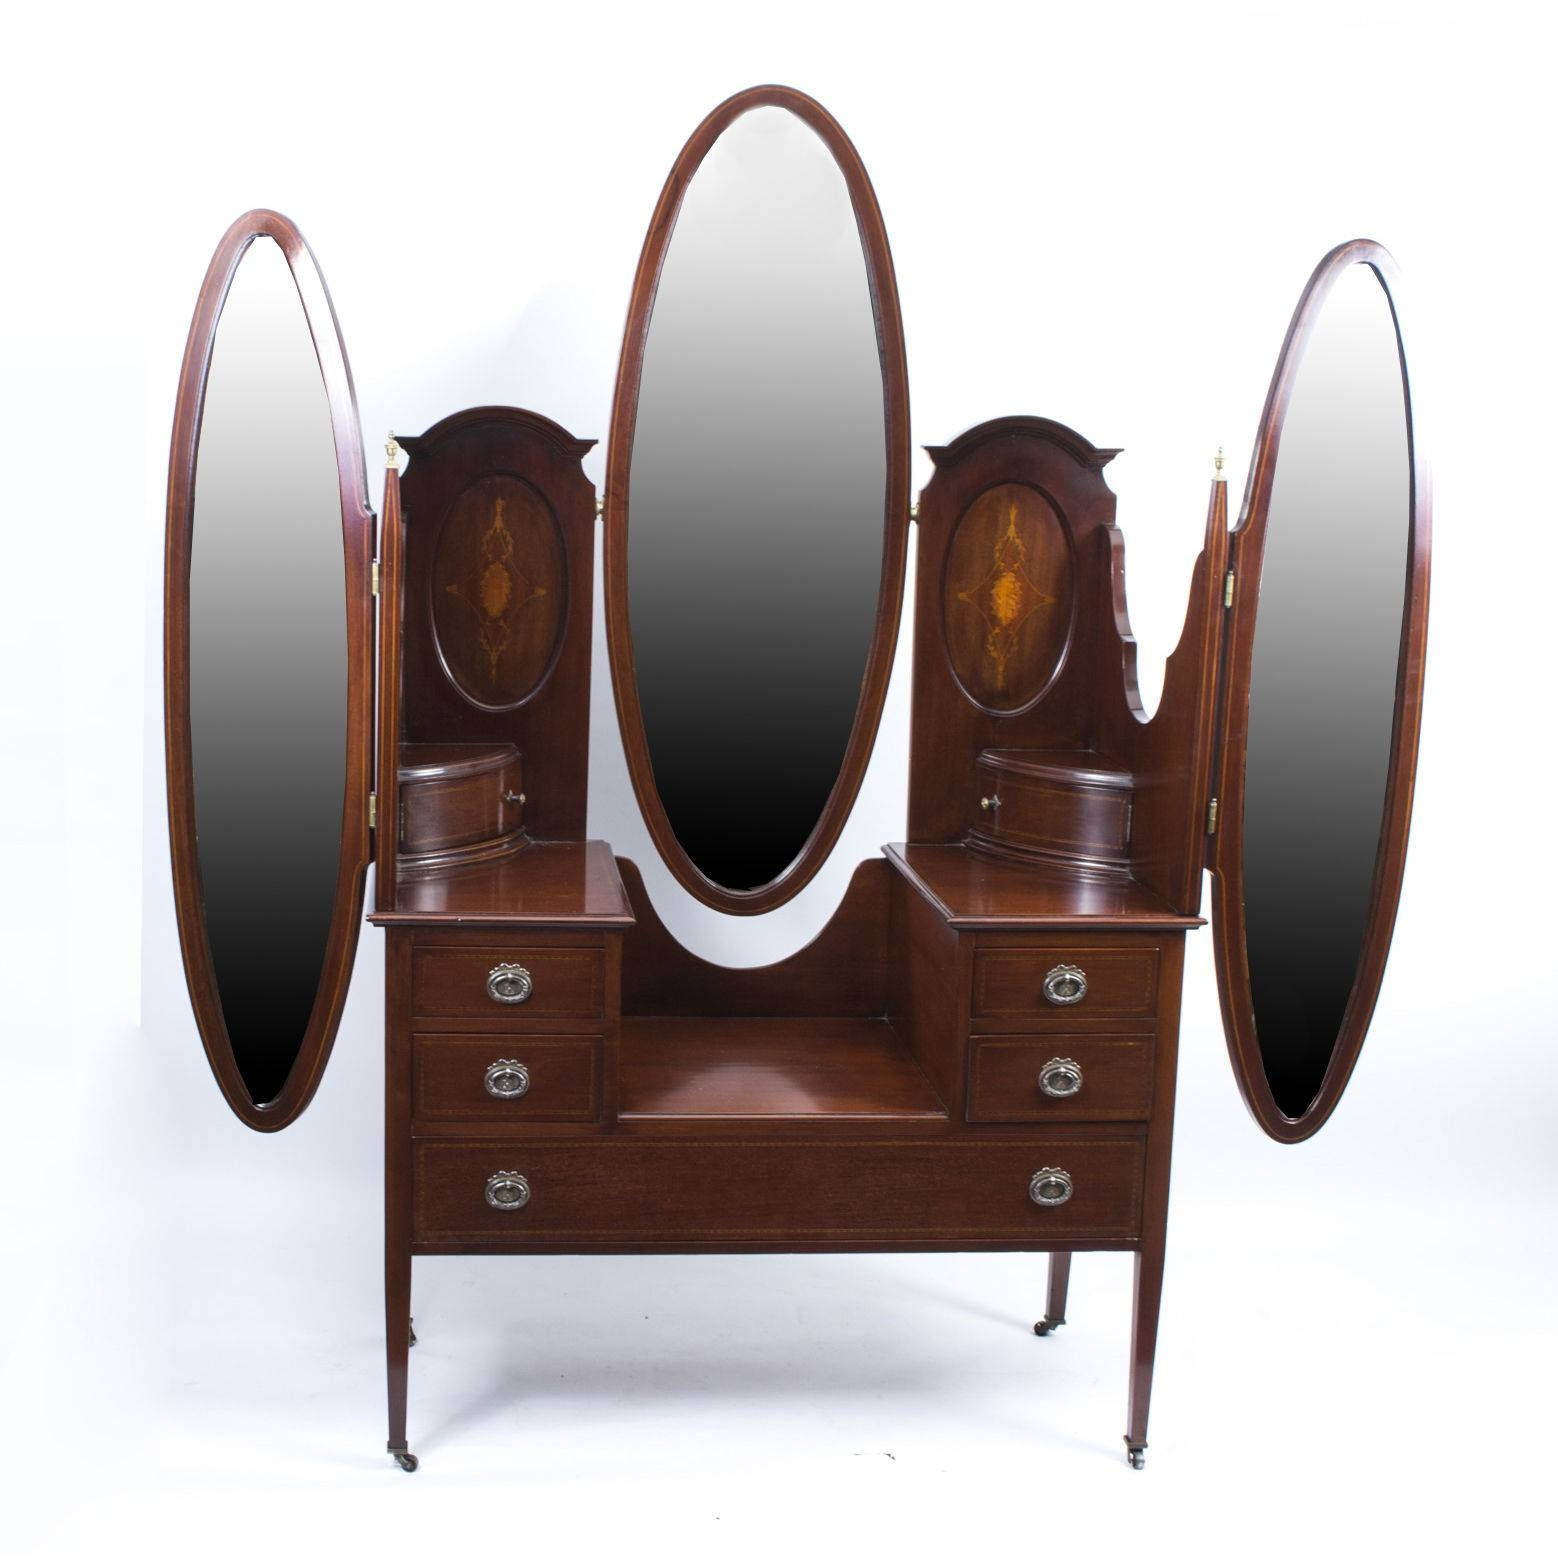 Antique Edwardian Mahogany Triple Mirror Dressing Table C.1900 (C throughout Antique Triple Mirrors (Image 2 of 15)